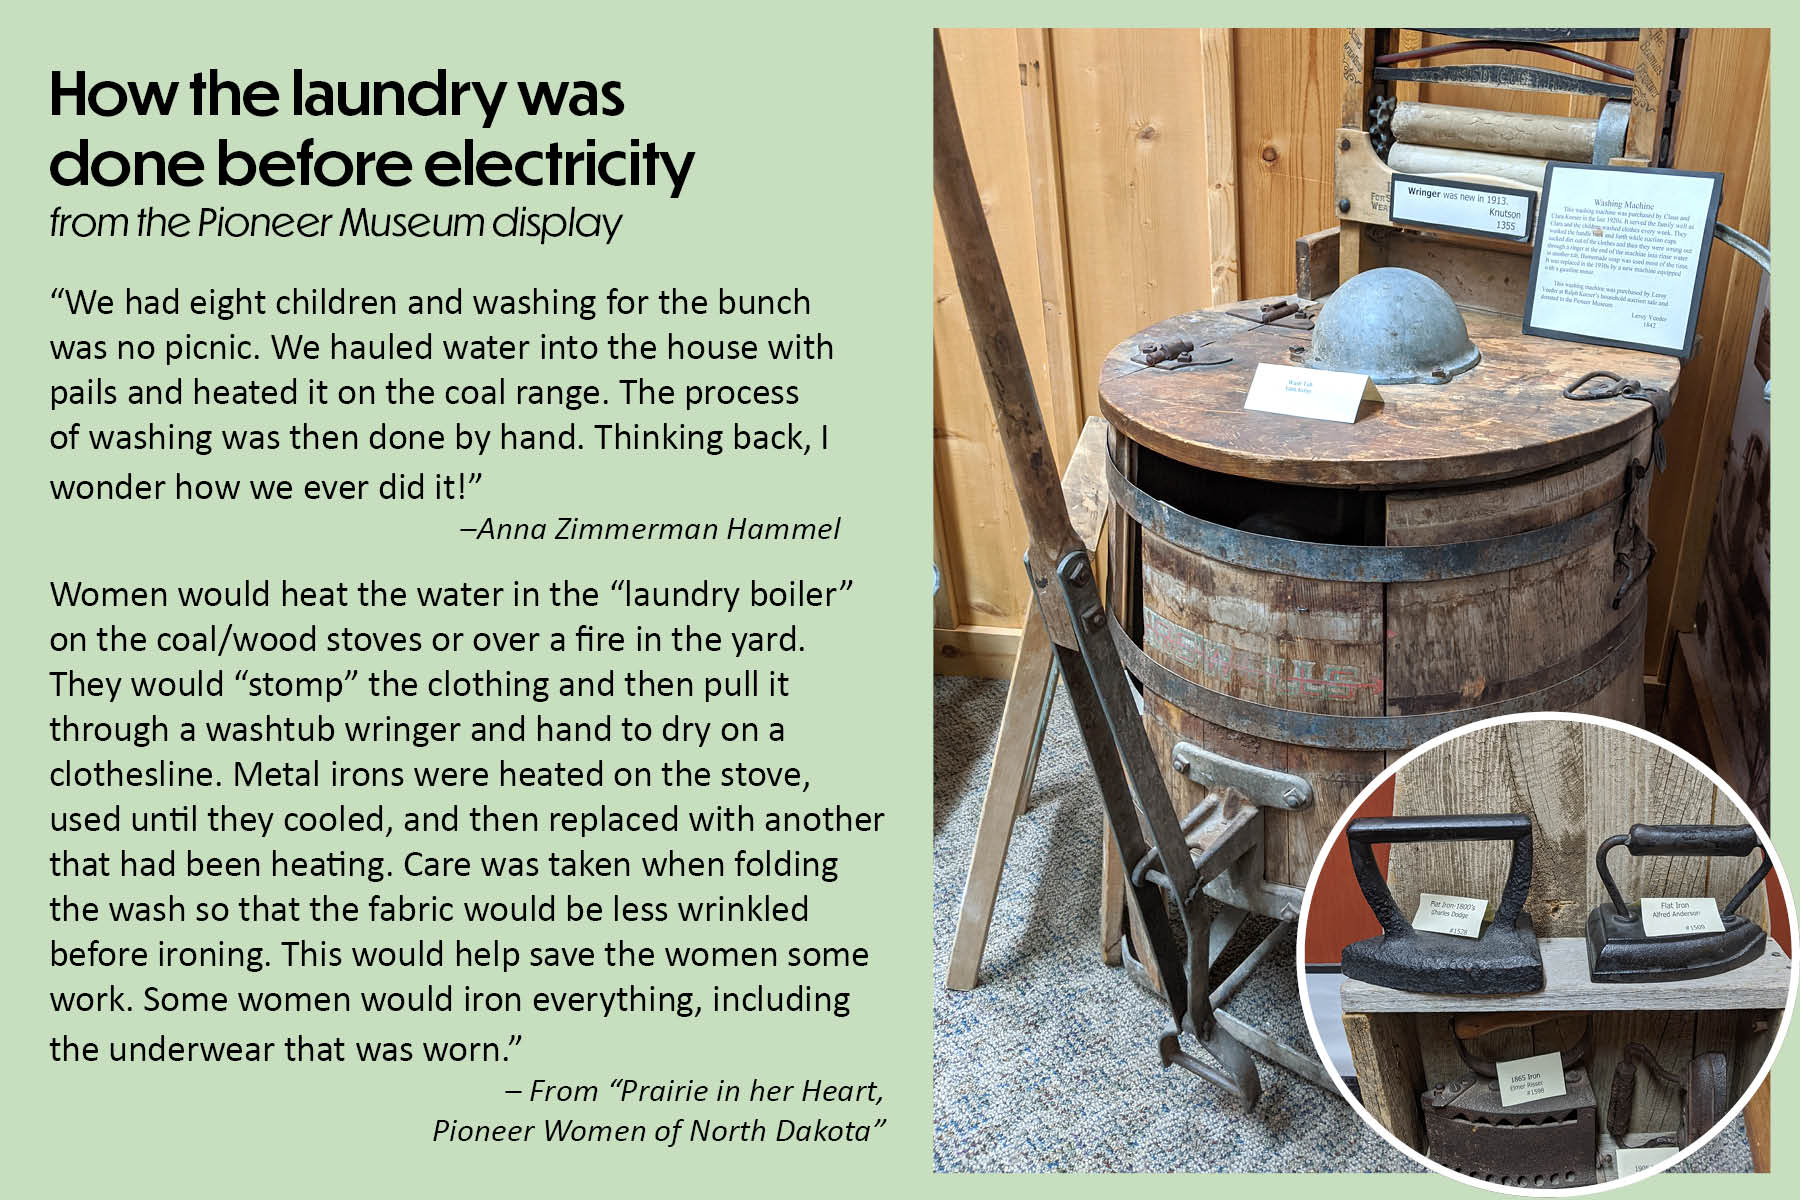 How the laundry was done before electricity